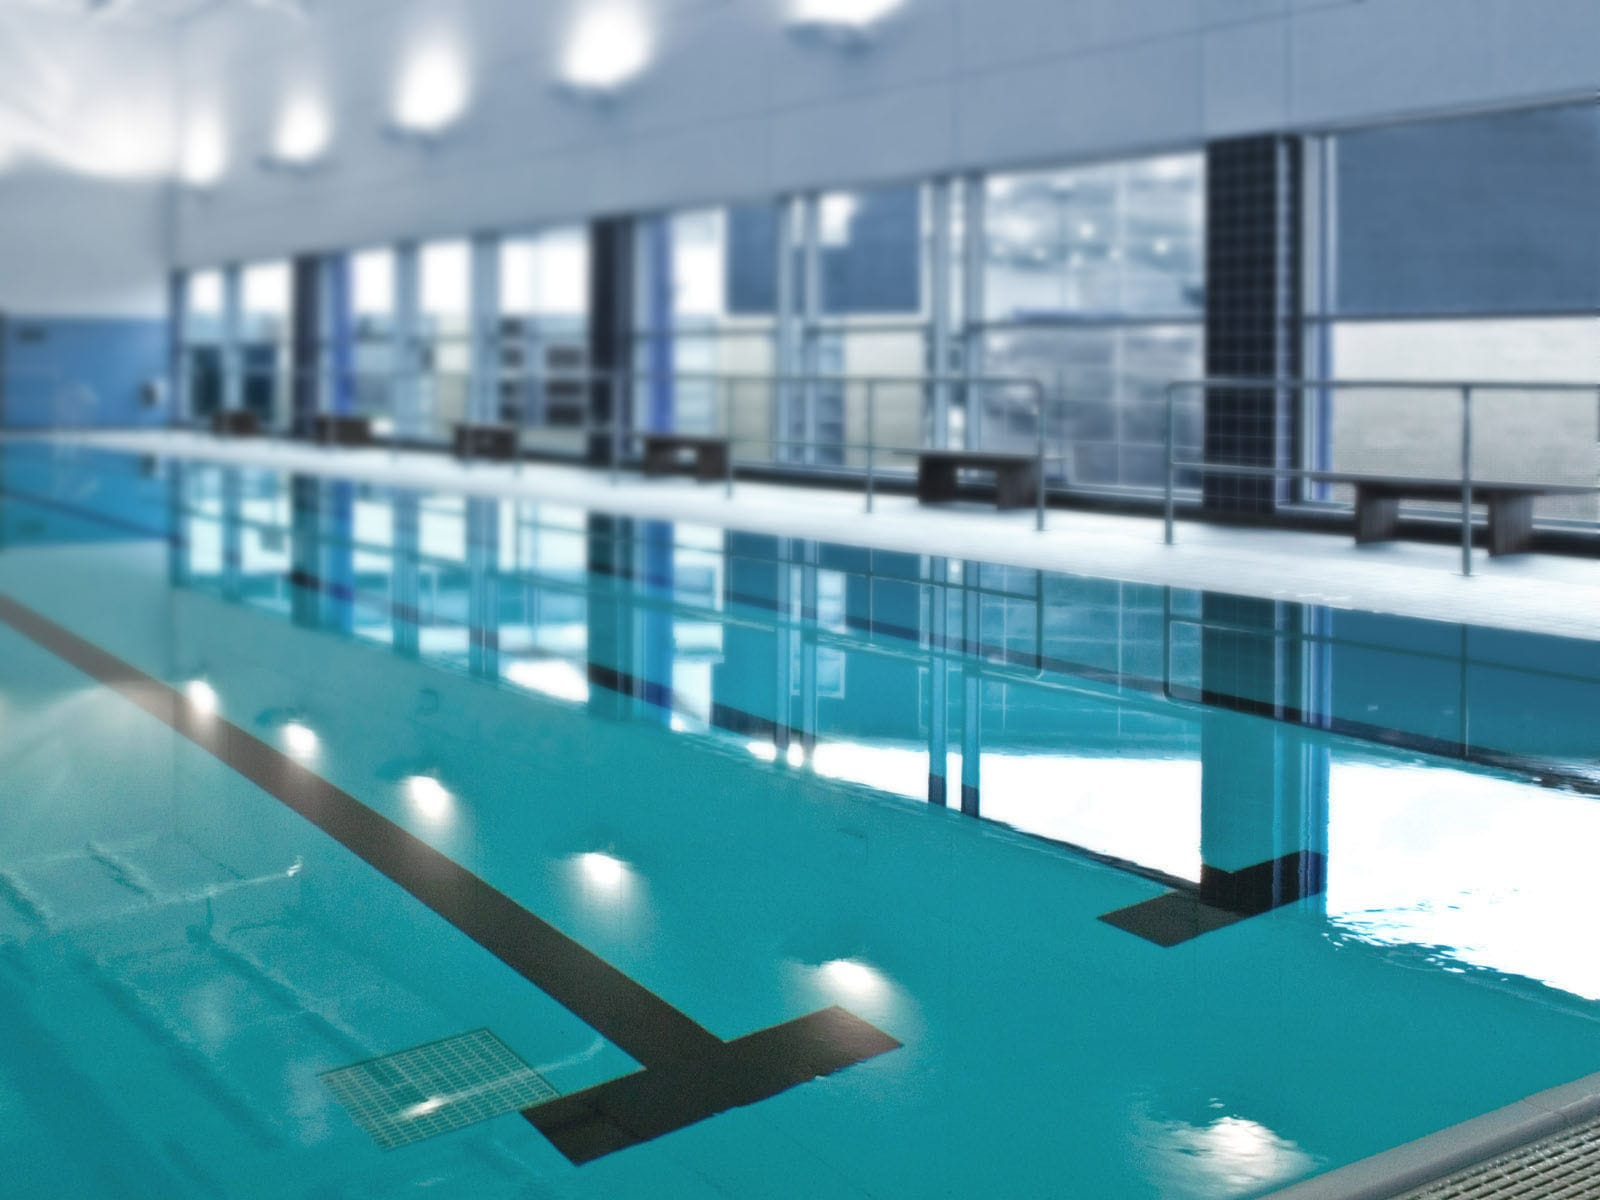 In Ground Swimming Pool / Stainless Steel / Public / Indoor ...